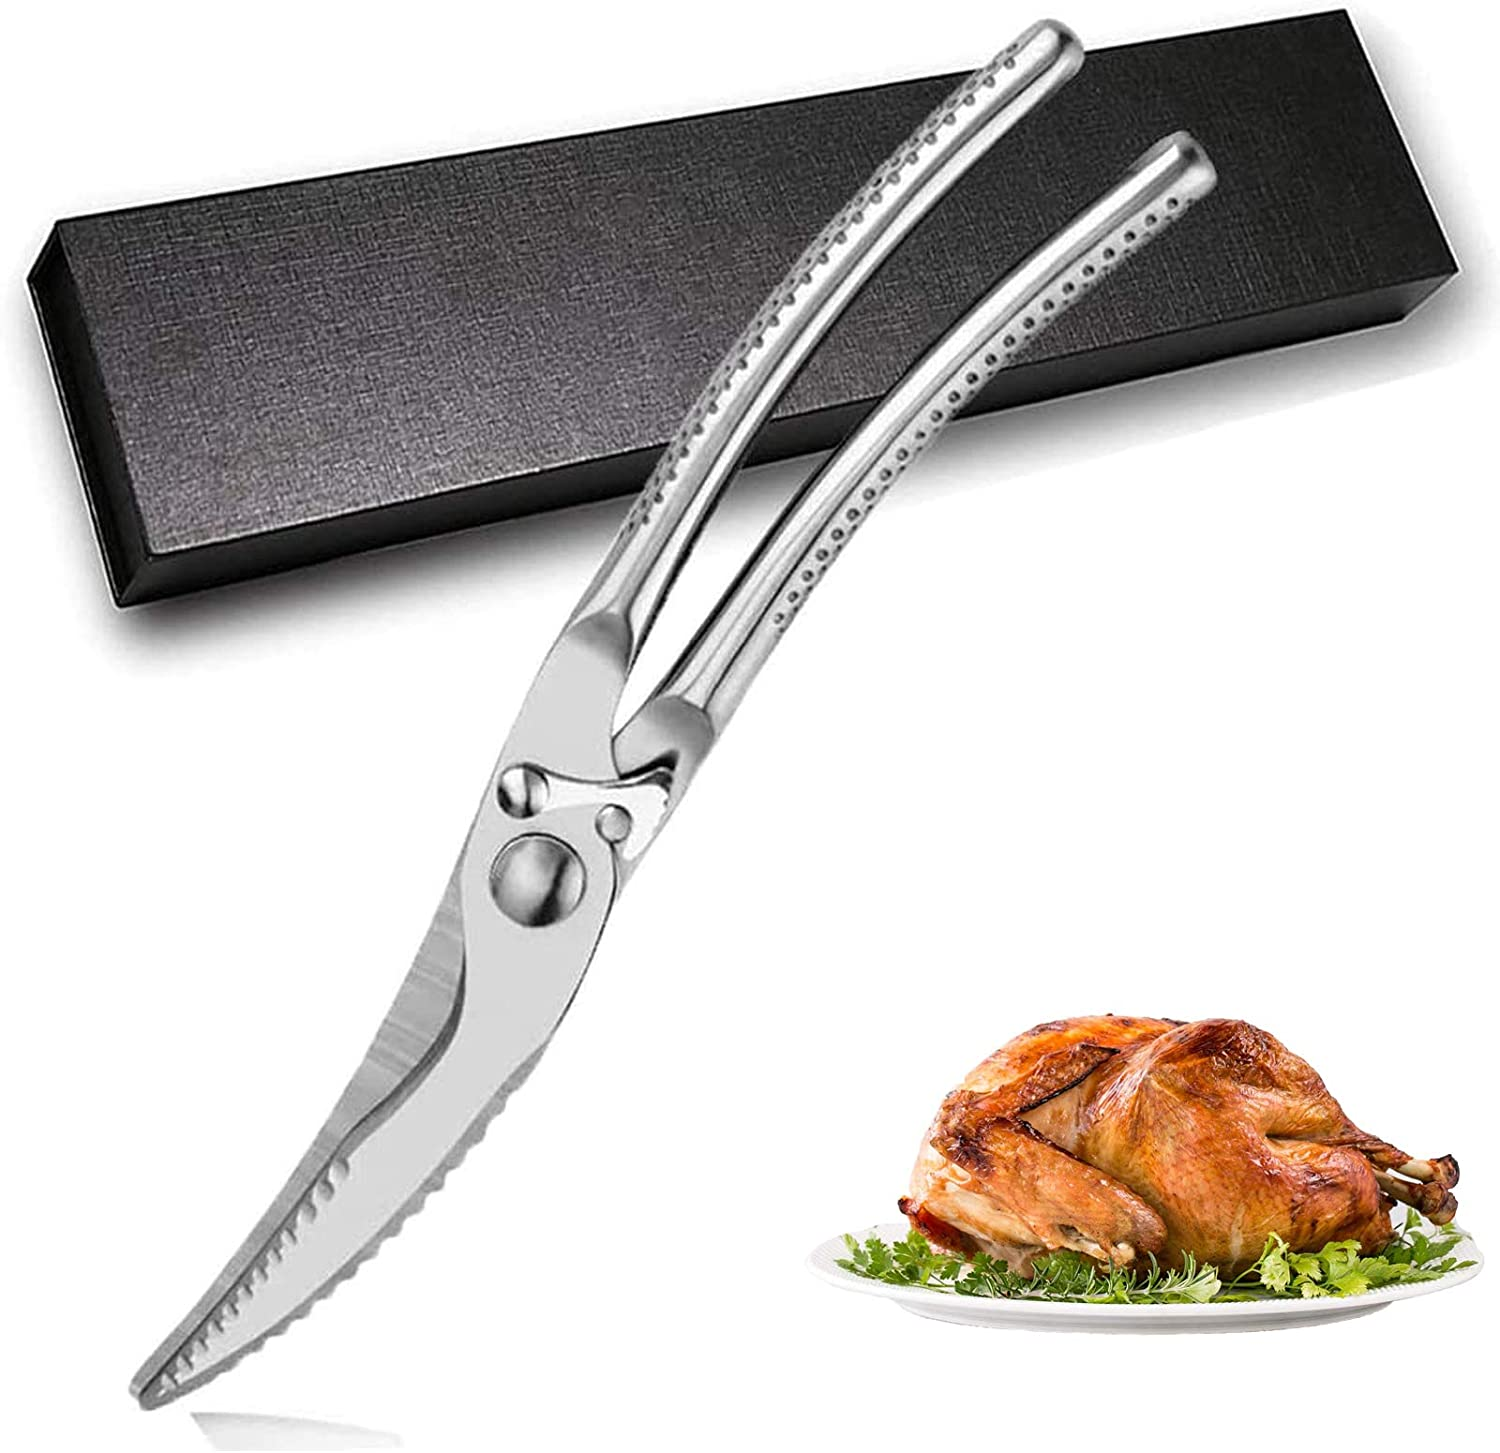 Adovs Kitchen Shears, Stainless Steel Kitchen Scissors Heavy Duty, Multifunctional Poultry Shears Spring-Loaded Food Scissors for Cutting Chicken, Meat, Bone, Fish, Seafood, Vegetables, BBQ